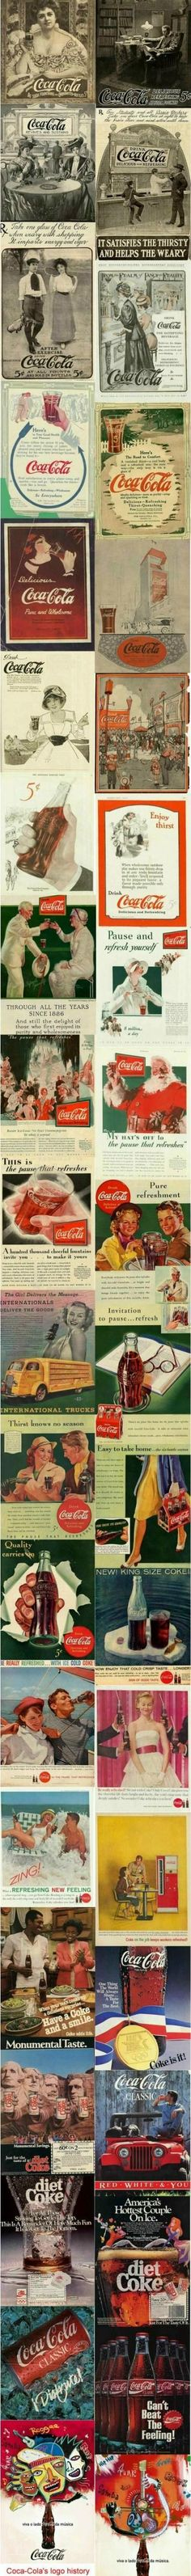 Coca Cola Old Ads. When Coca Cola was first invented it was suggested to use as headache relief. It contained a small amount of cocaine, thus the name. Coca Cola Poster, Coca Cola Ad, Always Coca Cola, World Of Coca Cola, Coca Cola Vintage, Coca Cola Kitchen, Coke Ad, Cocoa Cola, Old Advertisements